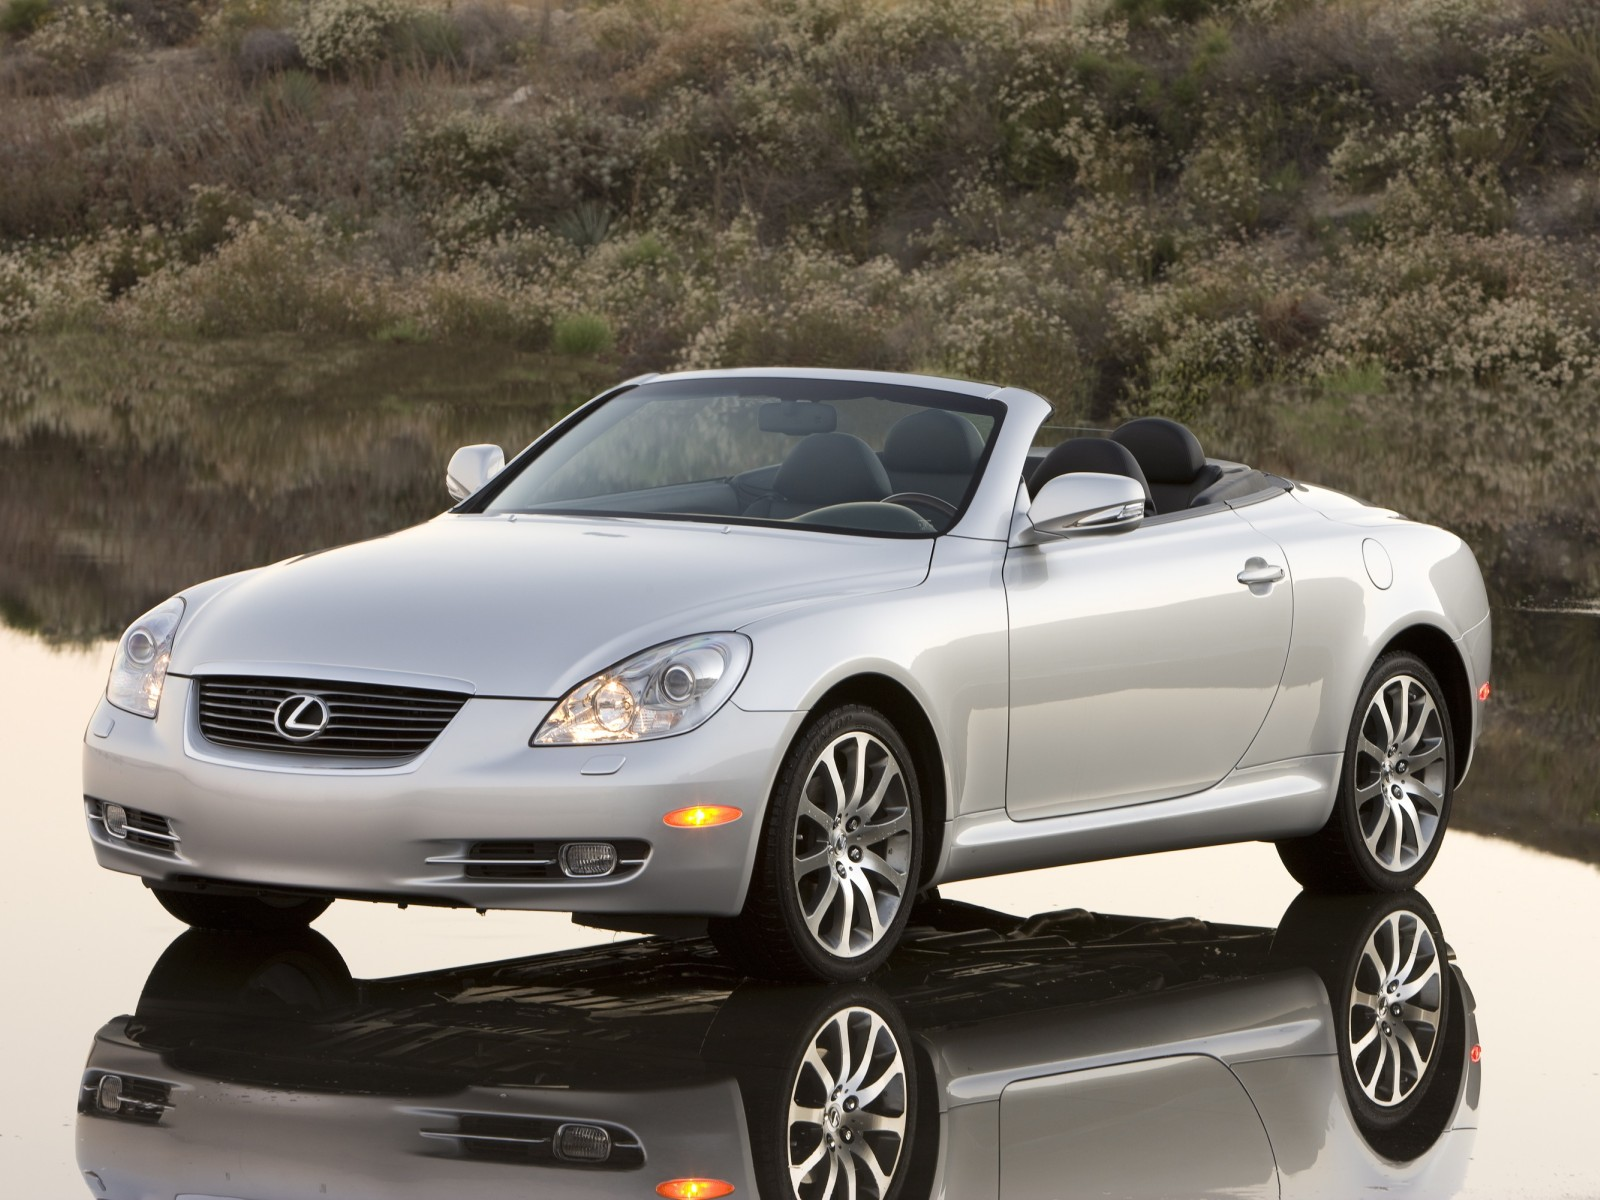 2009 Lexus SC 430 Wallpapers Pictures Specifications